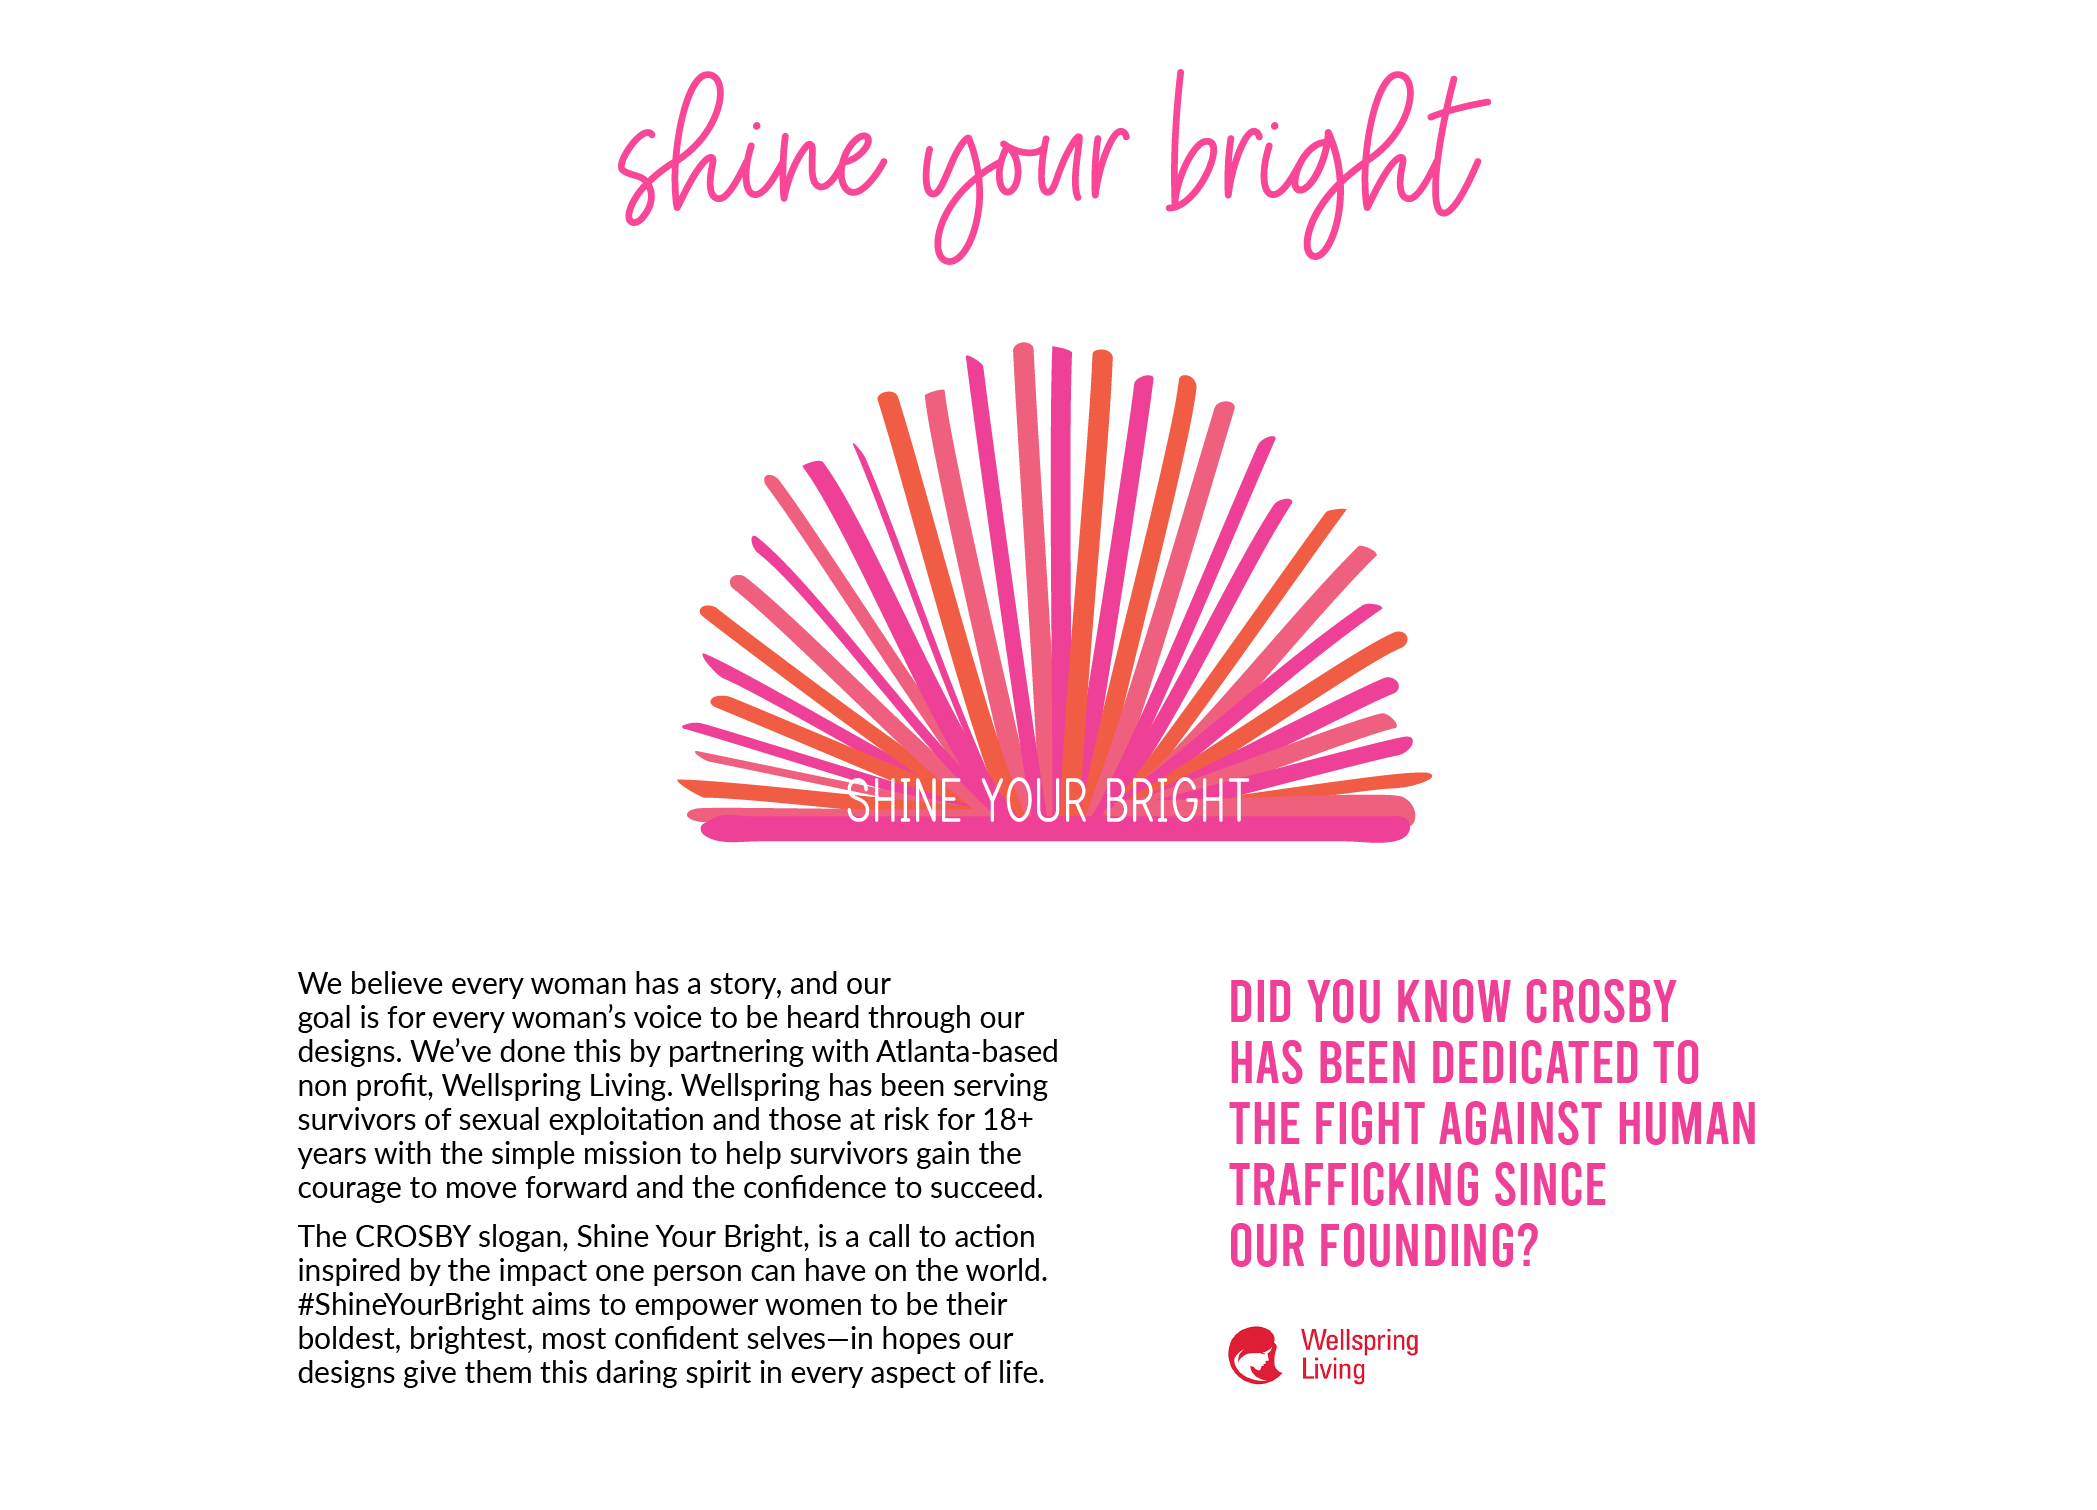 Our Mission, Shine Your Bright: Did you know CROSBY has been dedicated to the fight against human trafficking since our founding?  We believe every woman has a story, and our goal is for every woman's voice to be heard through our designs. We've done this by partnering with Atlanta-based non profit, Wellspring Living. Wellspring has been serving survivors of sexual exploitation and those at risk for 18+ years with the simple mission to help survivors gain the courage to move forward and the confidence to succeed. The CROSBY slogan, Shine Your Bright, is a call to action inspired by the impact one person can have on the world. #ShineYourBright aims to empower women to be their boldest, brightest, most confident selves—in hopes our designs give them this daring spirit in every aspect of life.